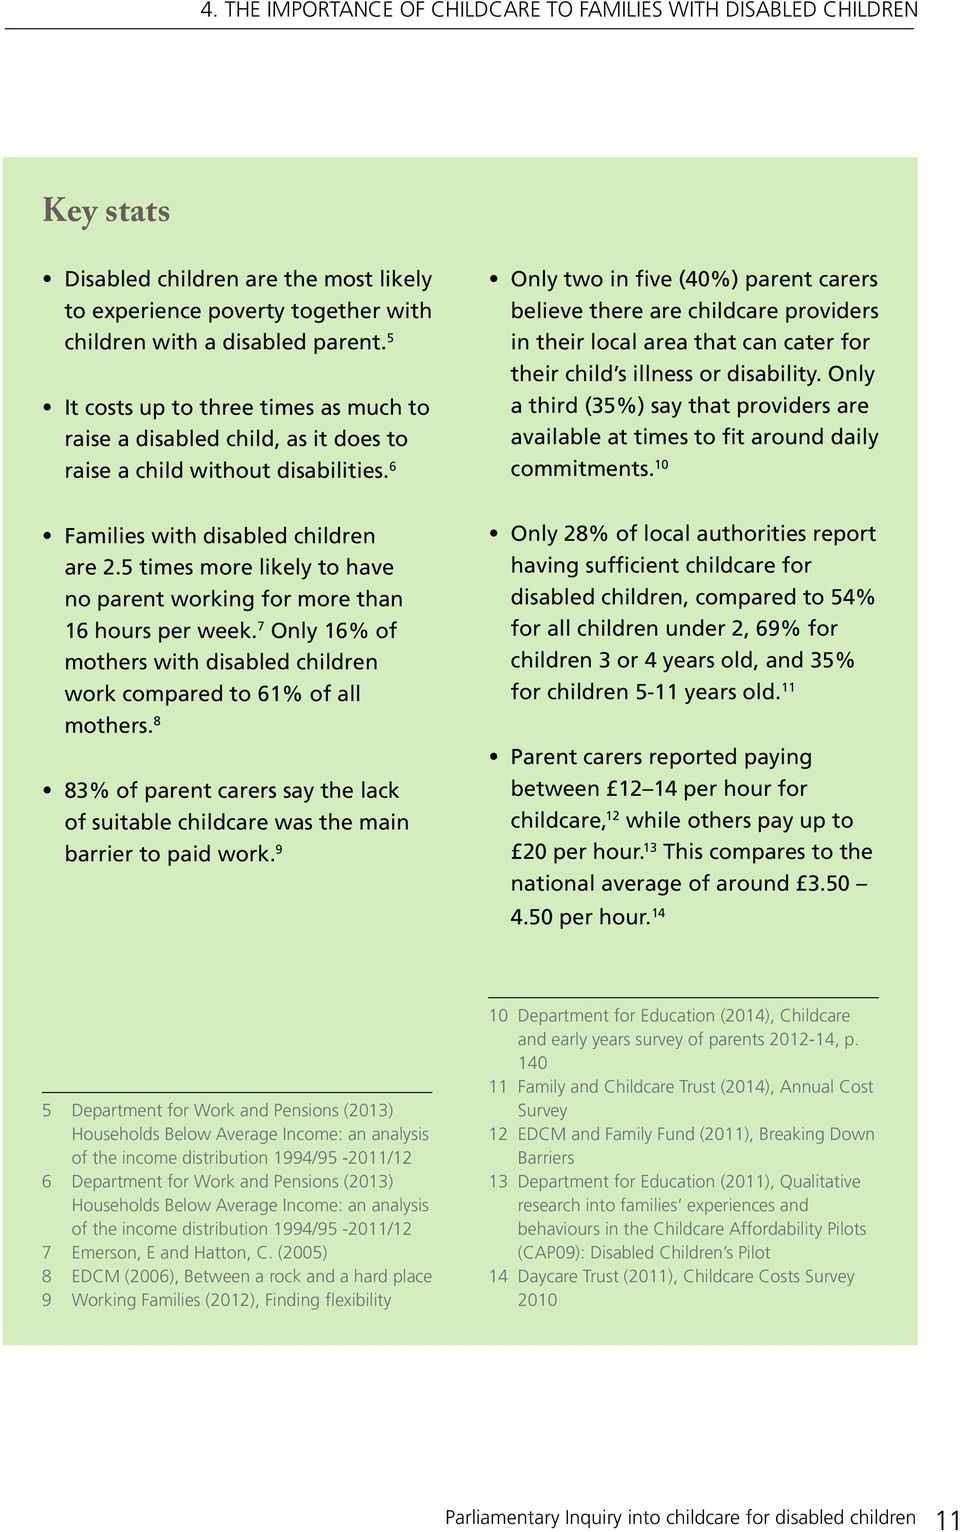 6 Only two in five (40%) parent carers believe there are childcare providers in their local area that can cater for their child s illness or disability.